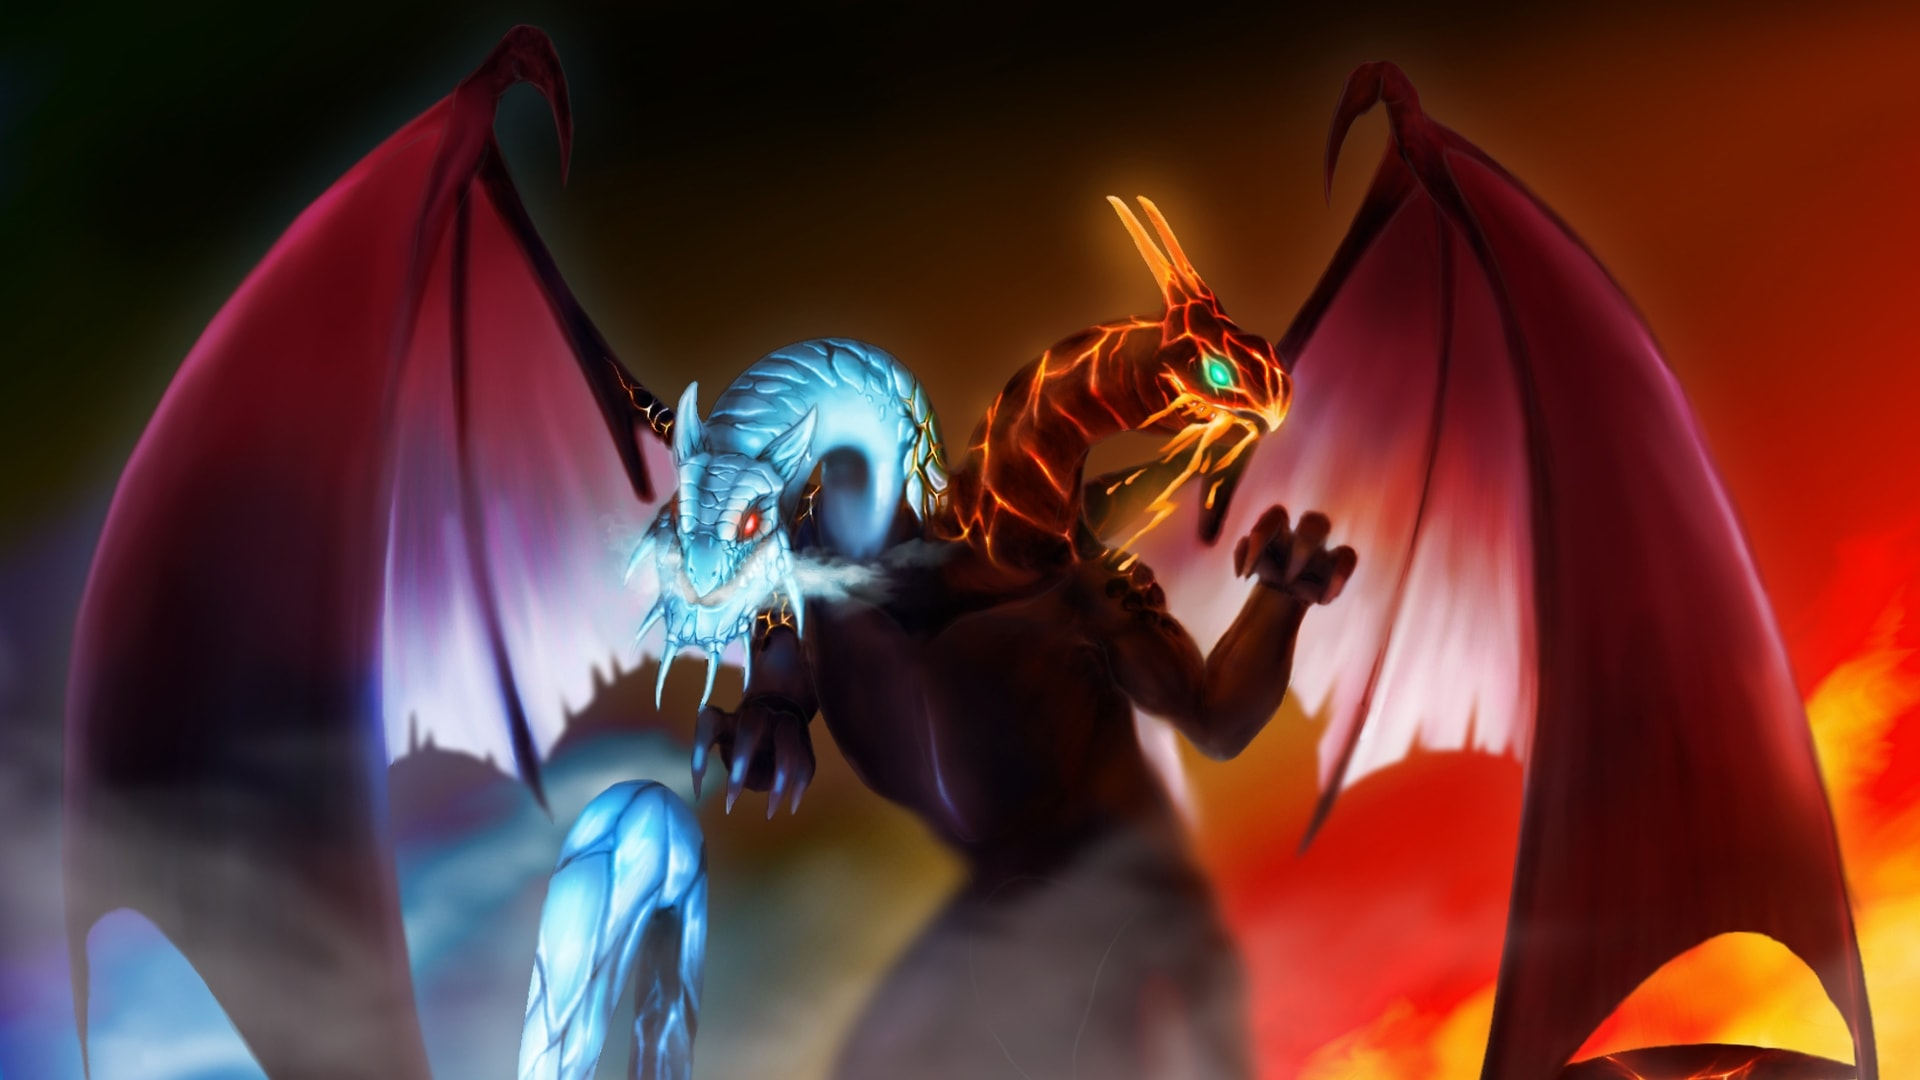 Dota2 : Jakiro Wallpapers hd